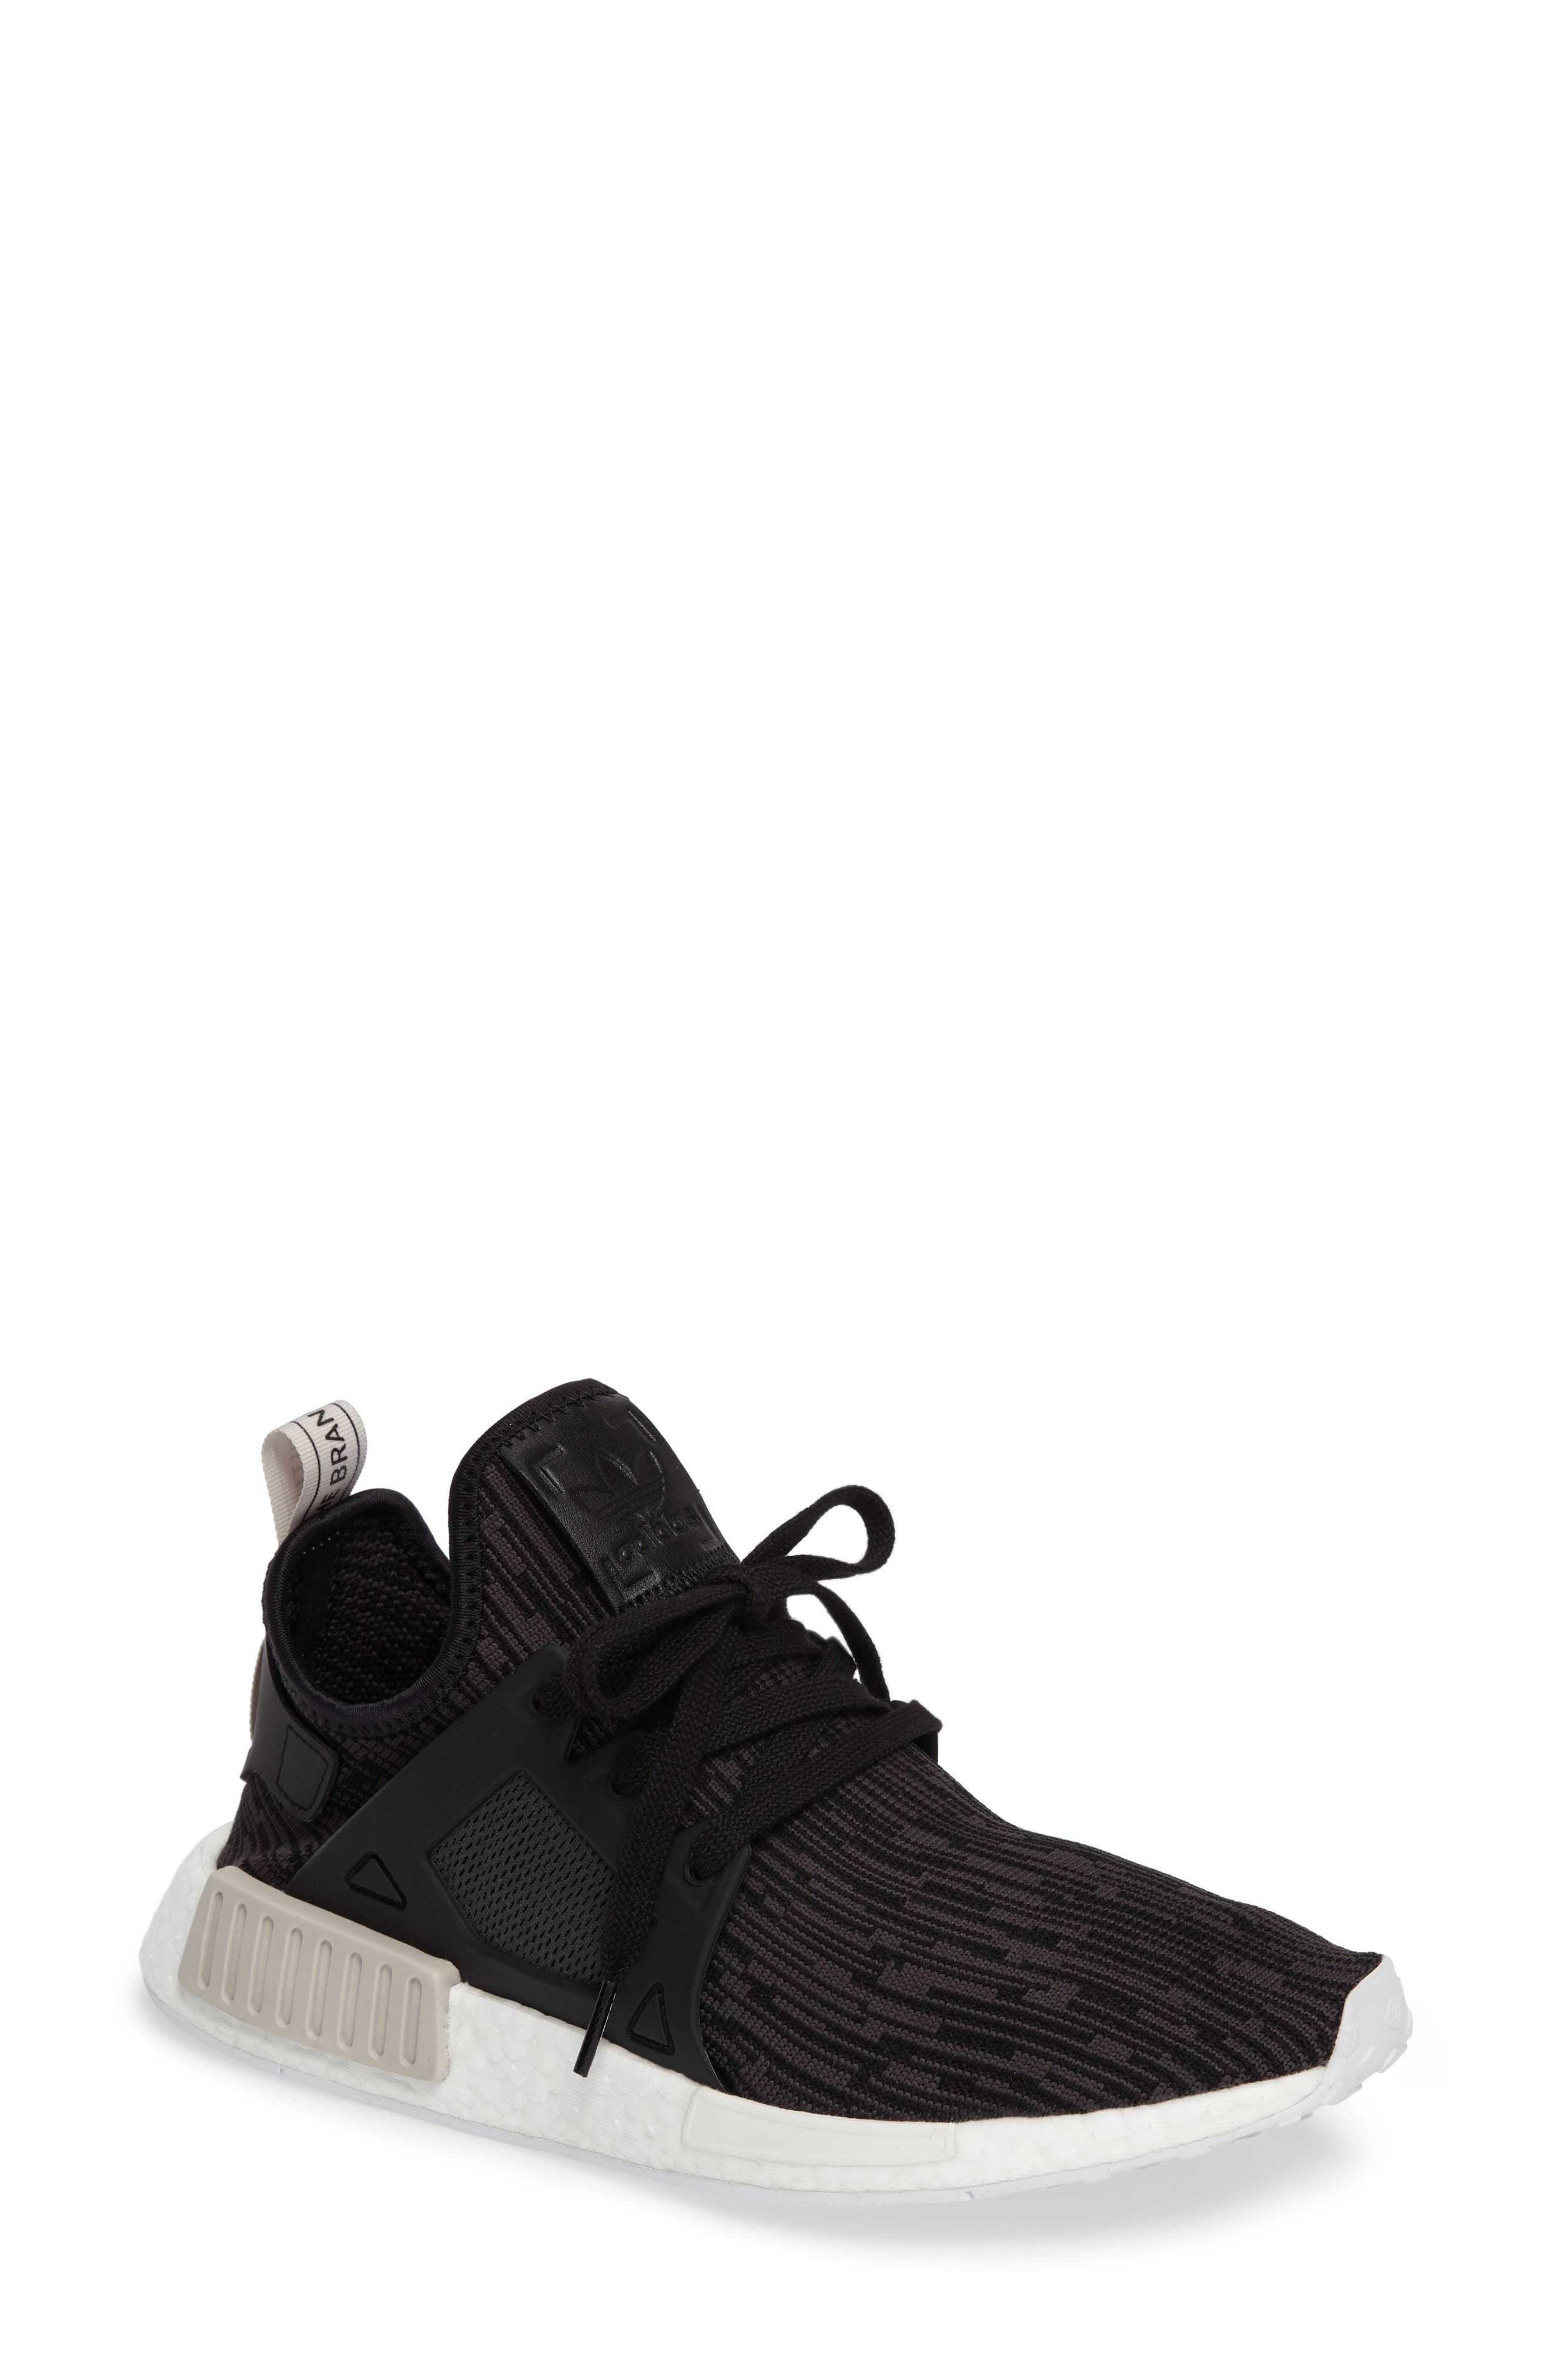 NMD XR1 Athletic Shoe,                             Main thumbnail 1, color,                             001